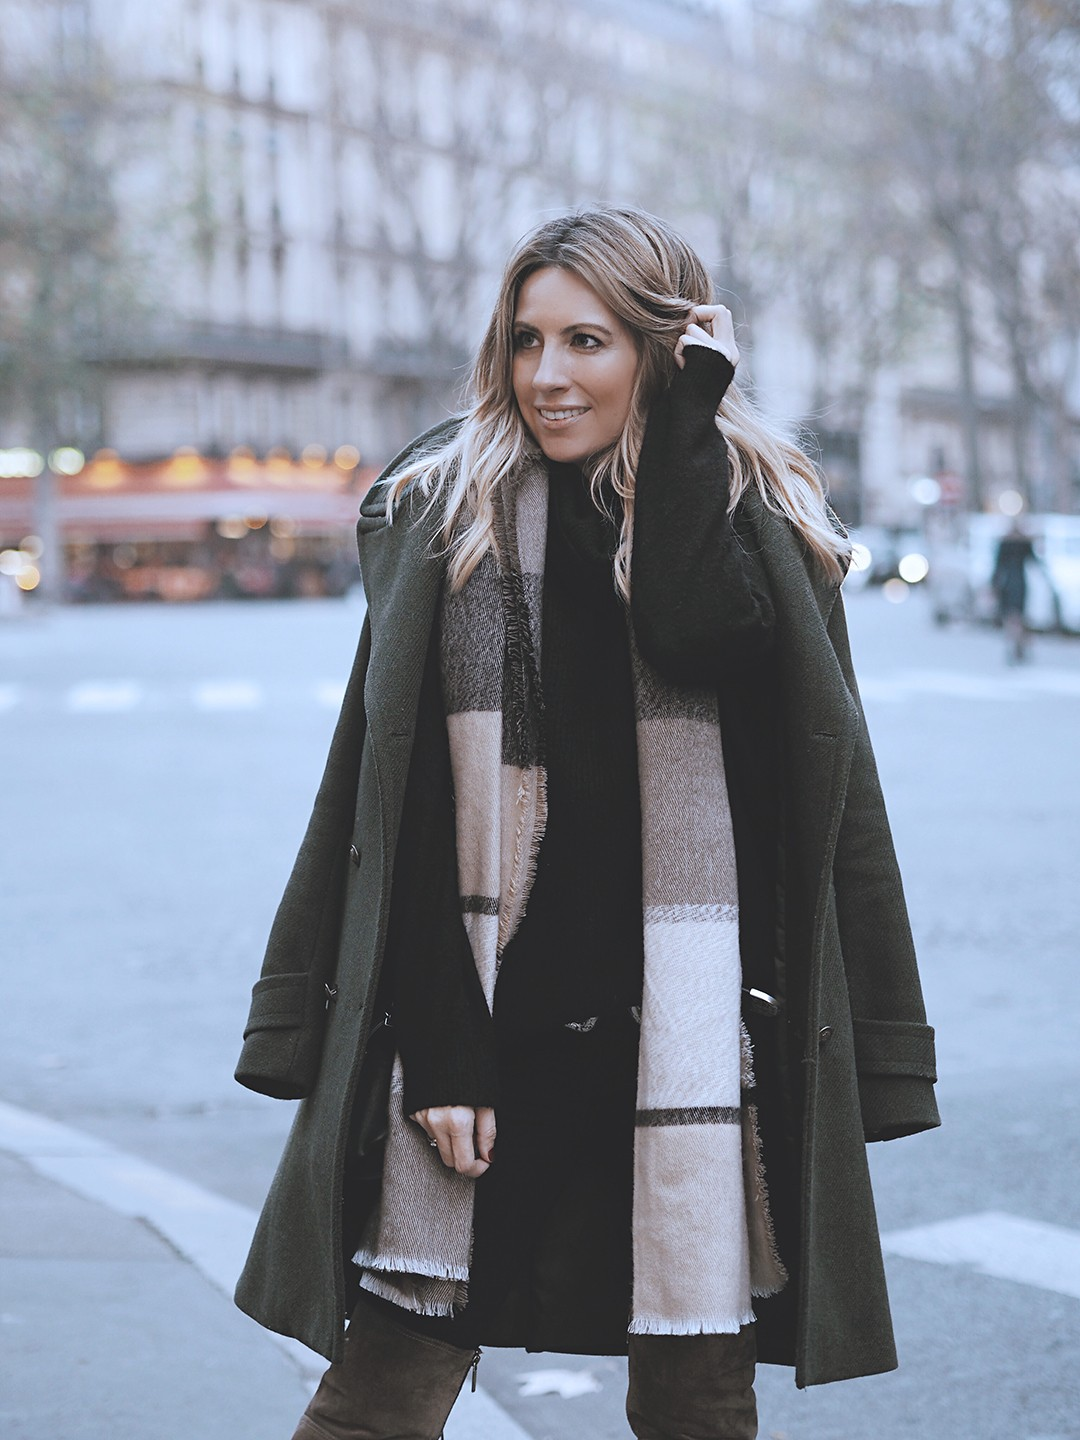 paris-street-style-fashion-blogger-2017-over-the-knee-bootsimg_5242